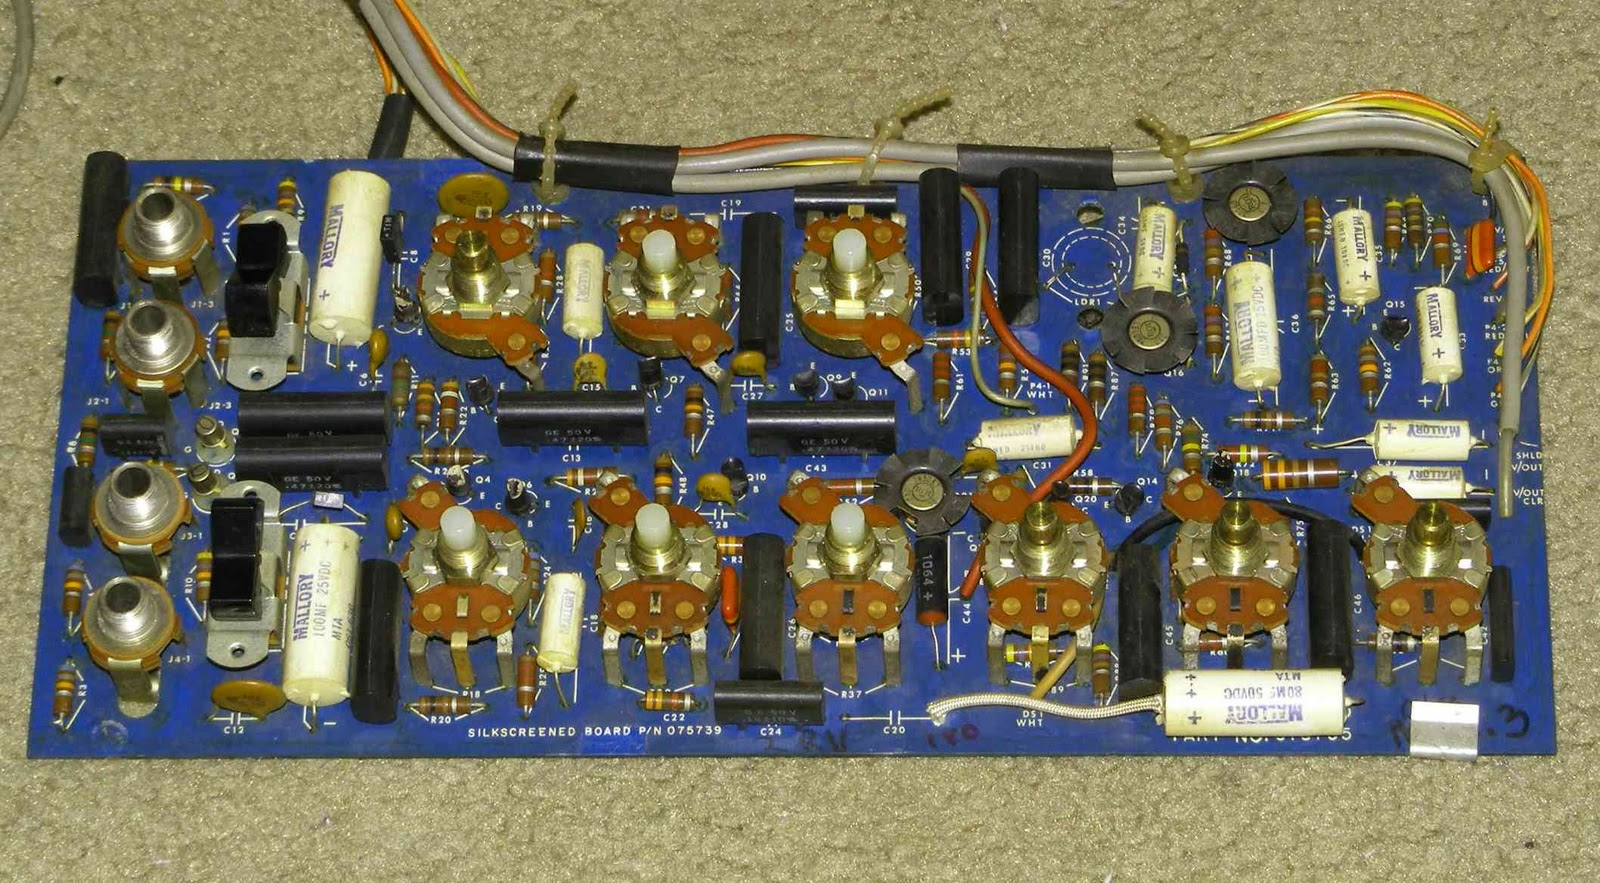 Grid Leak The Surprise Fender Deluxe 32 Watt Amplifier Preamp Has Fet First Stages And Is Very Well Designed